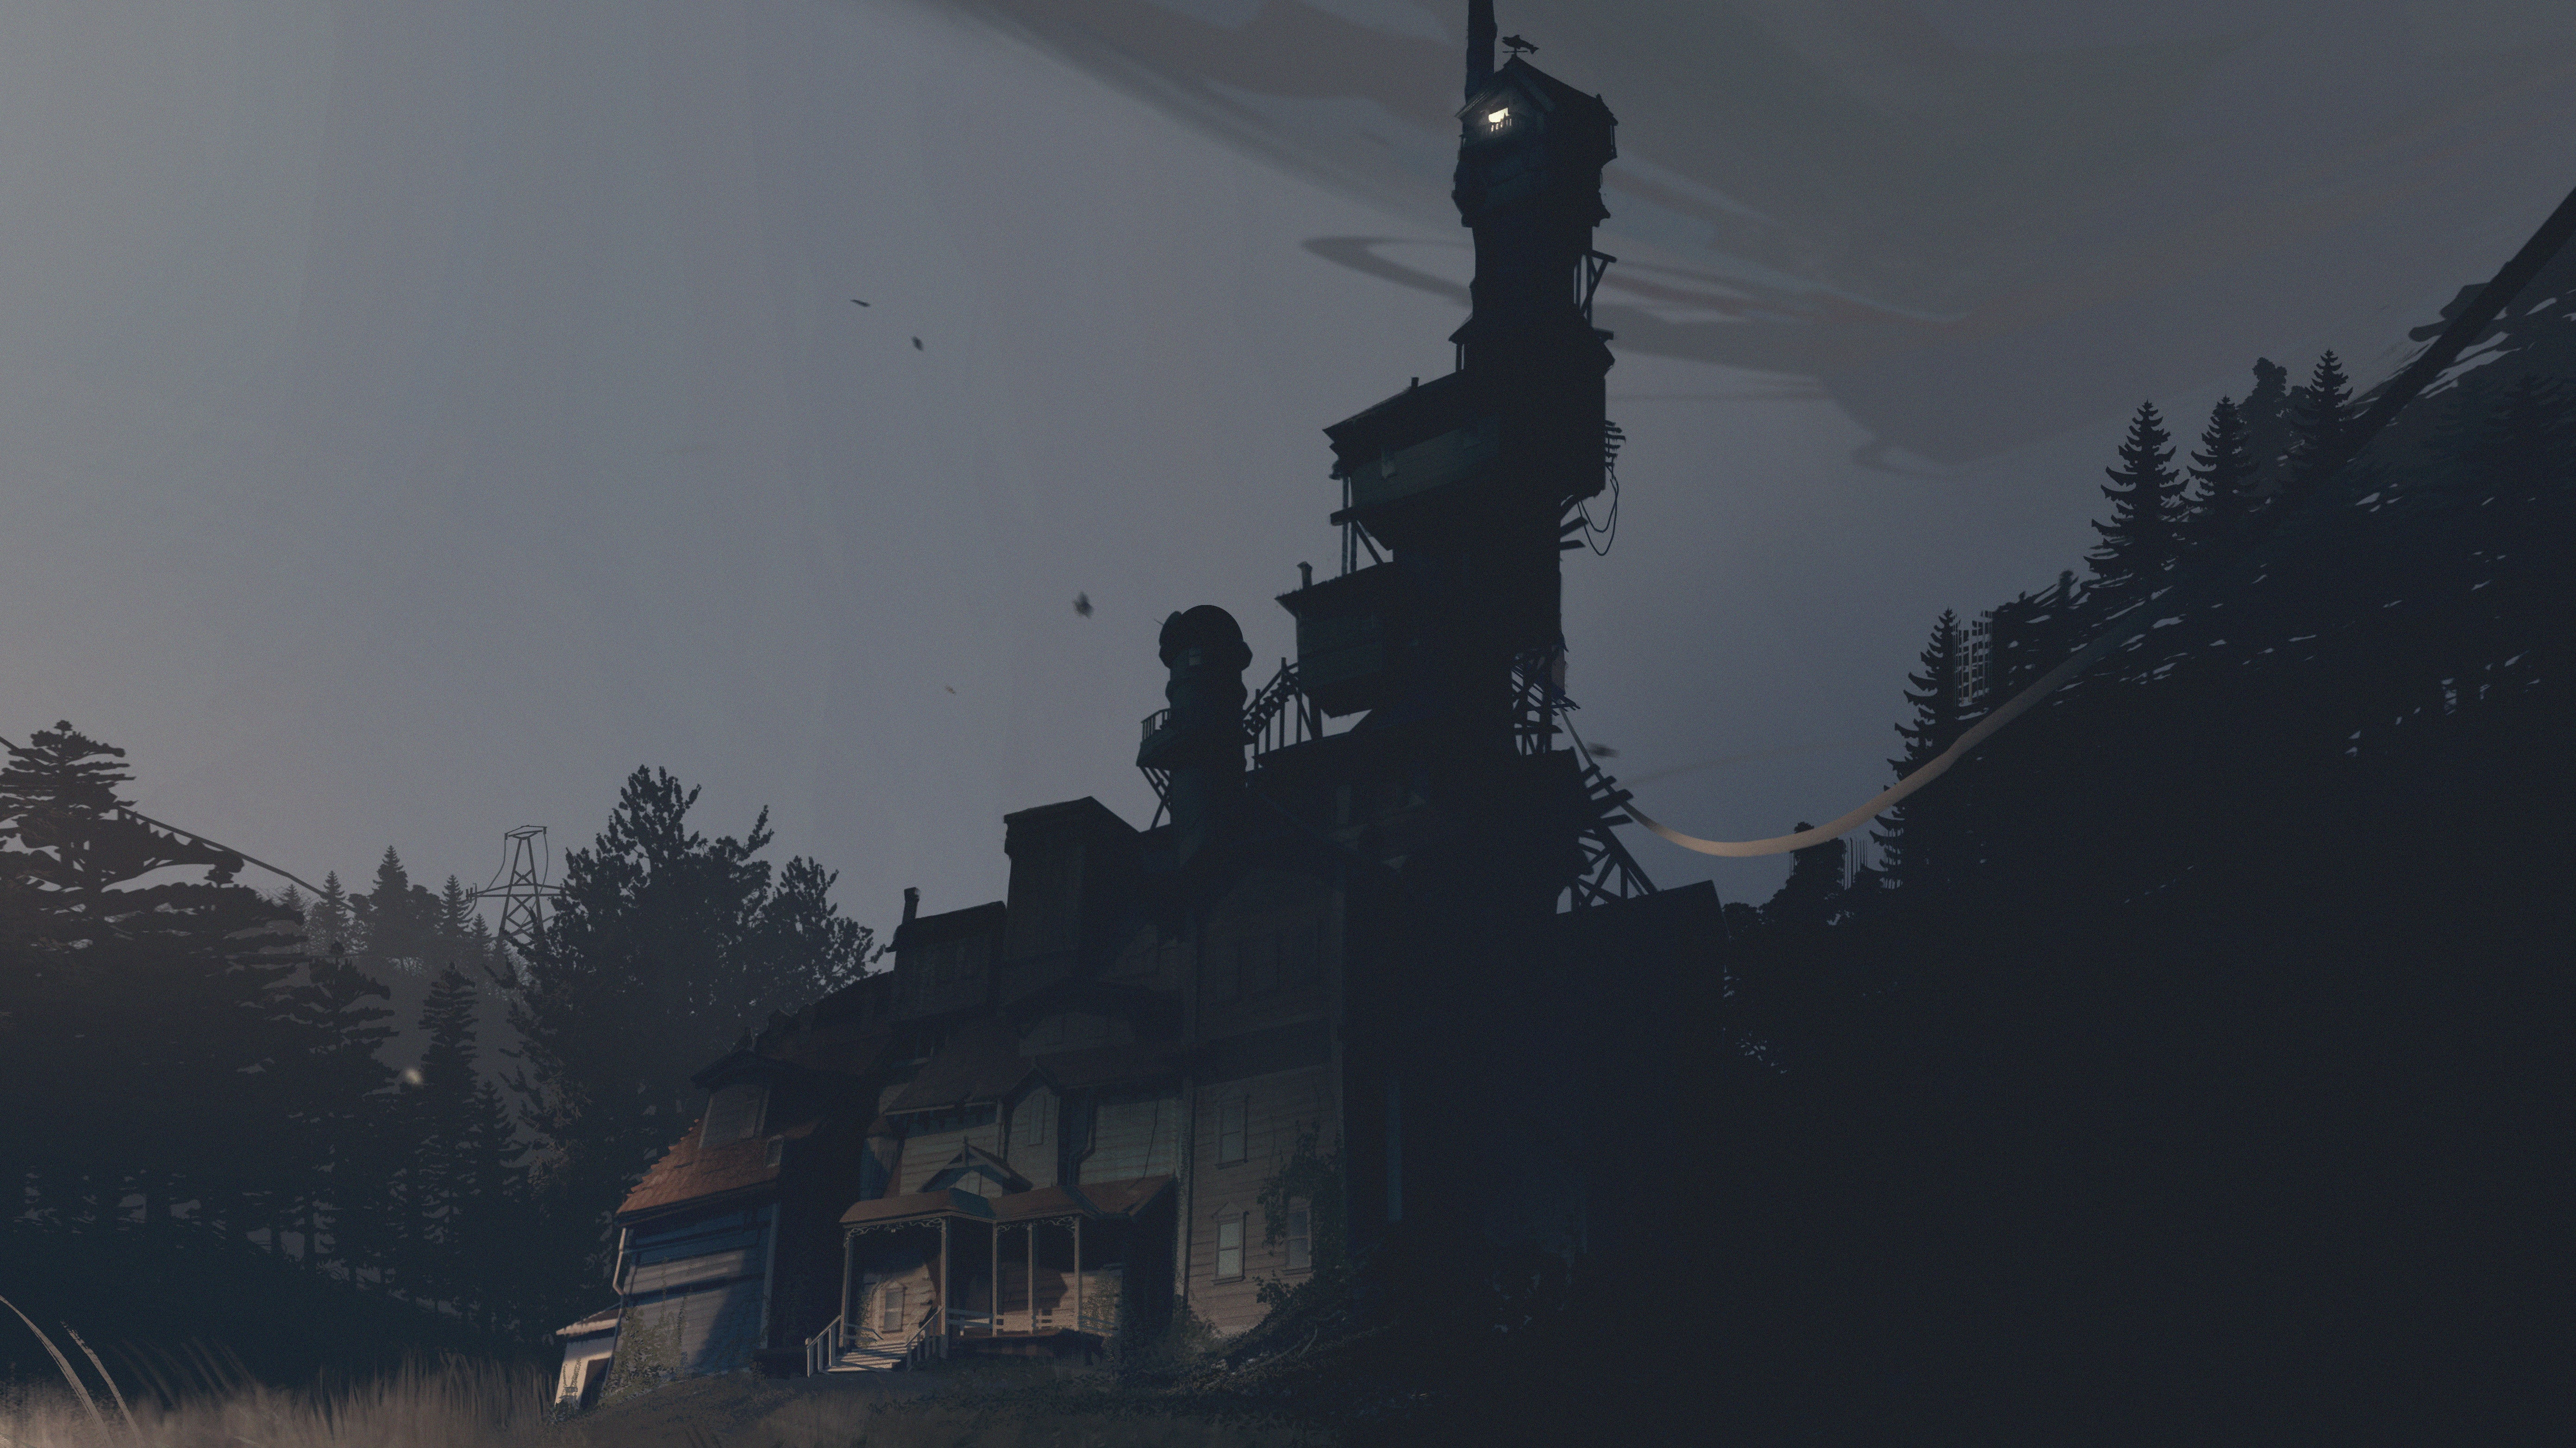 How Edith Finch Helped Me Deal With My Family's Dark Secret